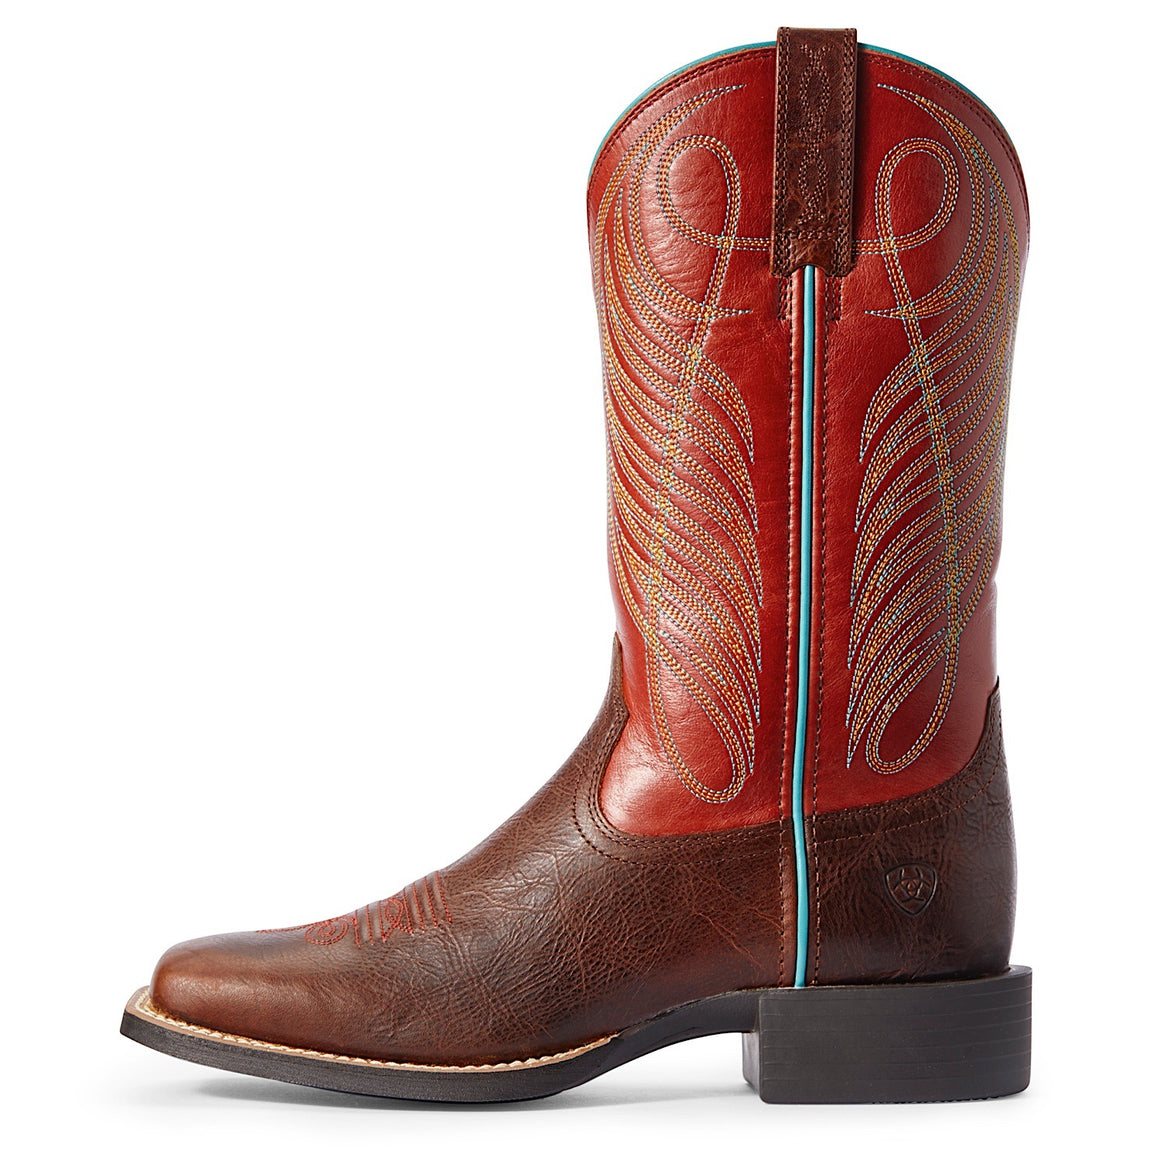 Ariat Womens Round Up Wide Square Toe Western Boot Brown Patina/Brick Red